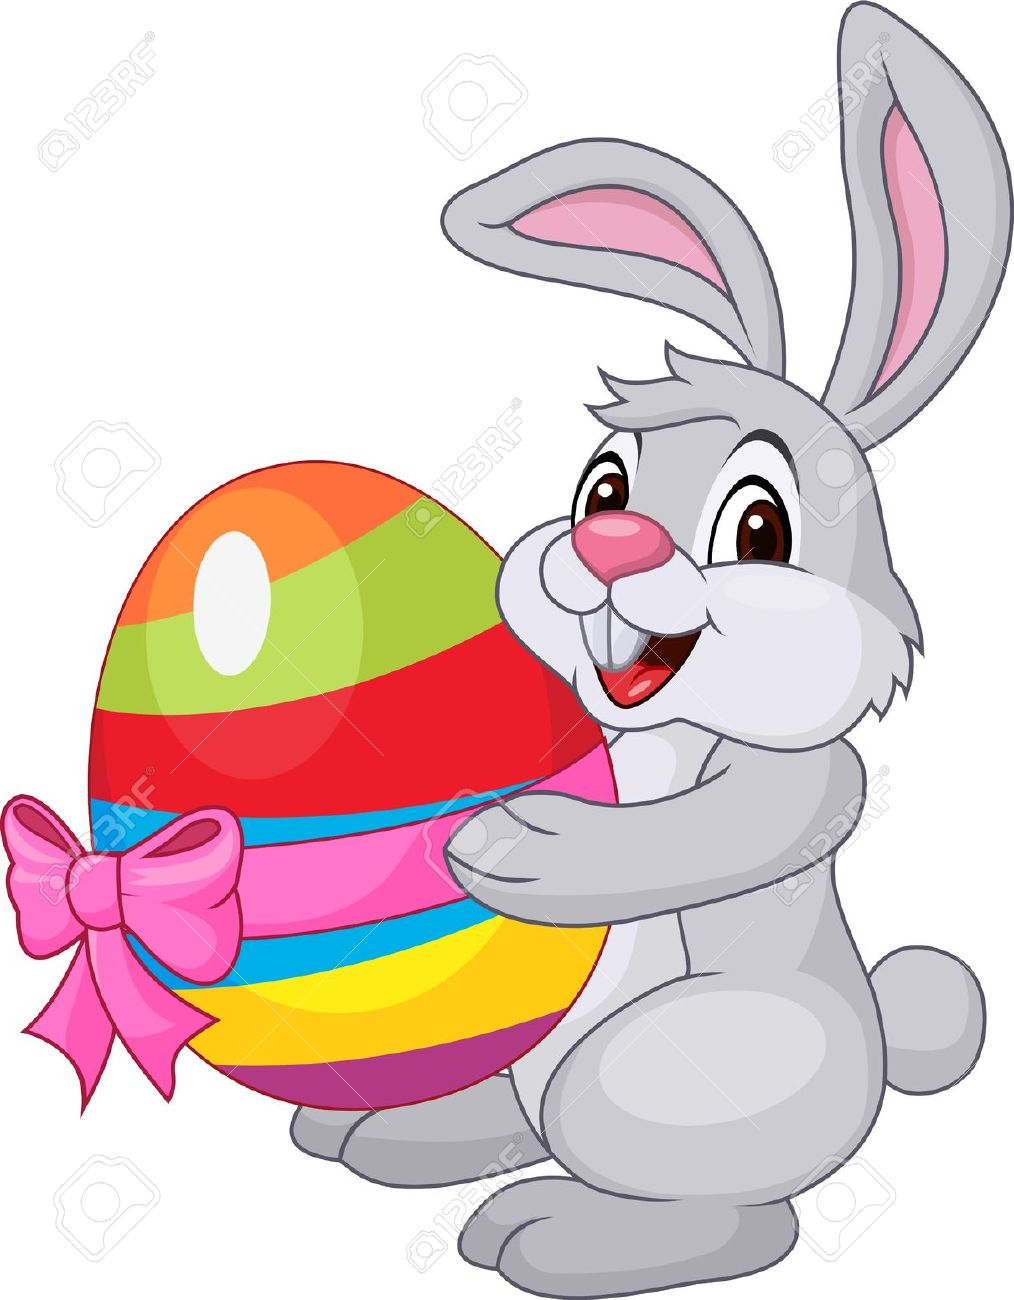 Cute easter bunny clipart free.